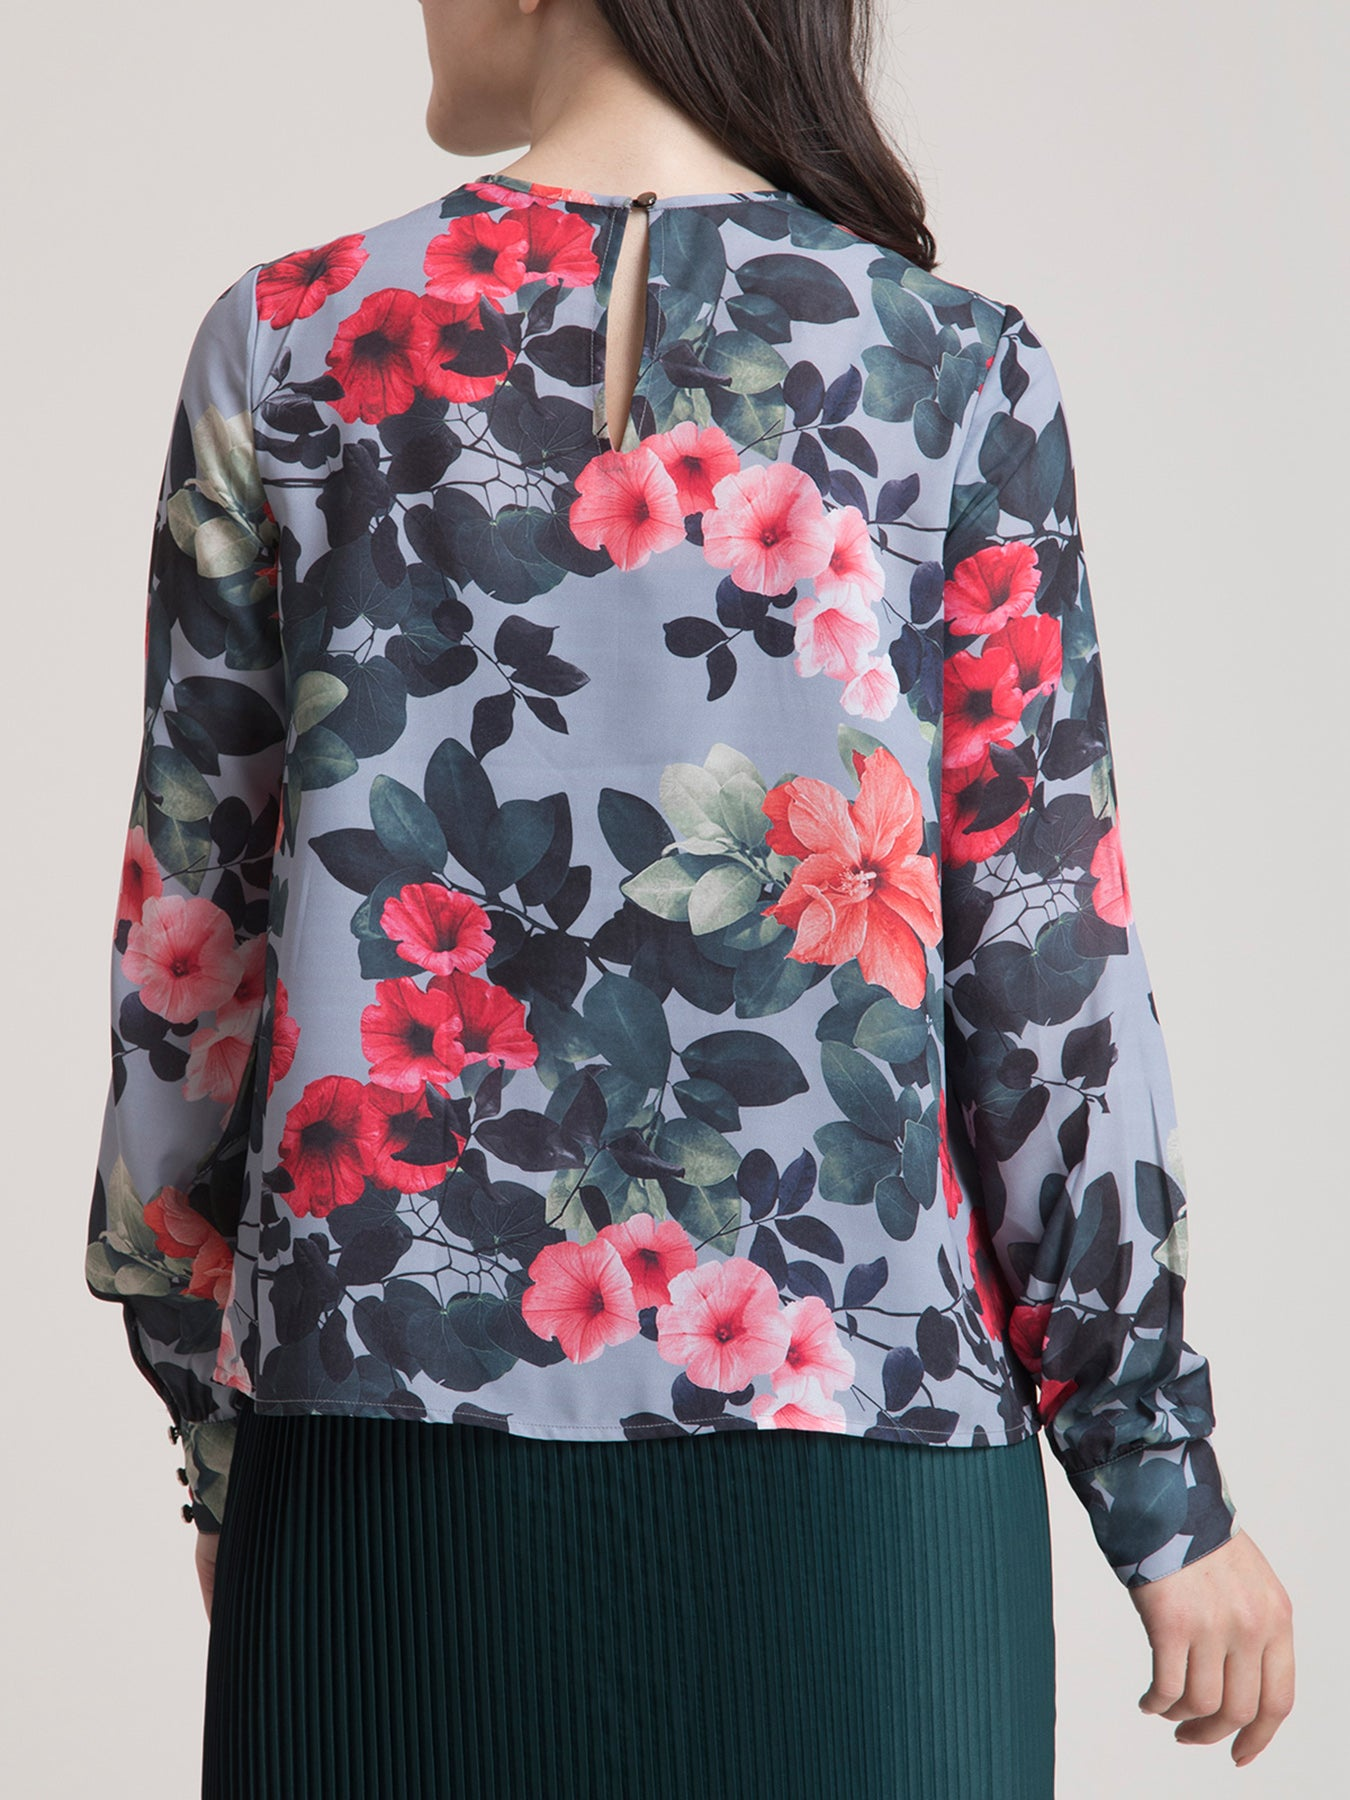 Crew Neck Floral Top - Grey and Red